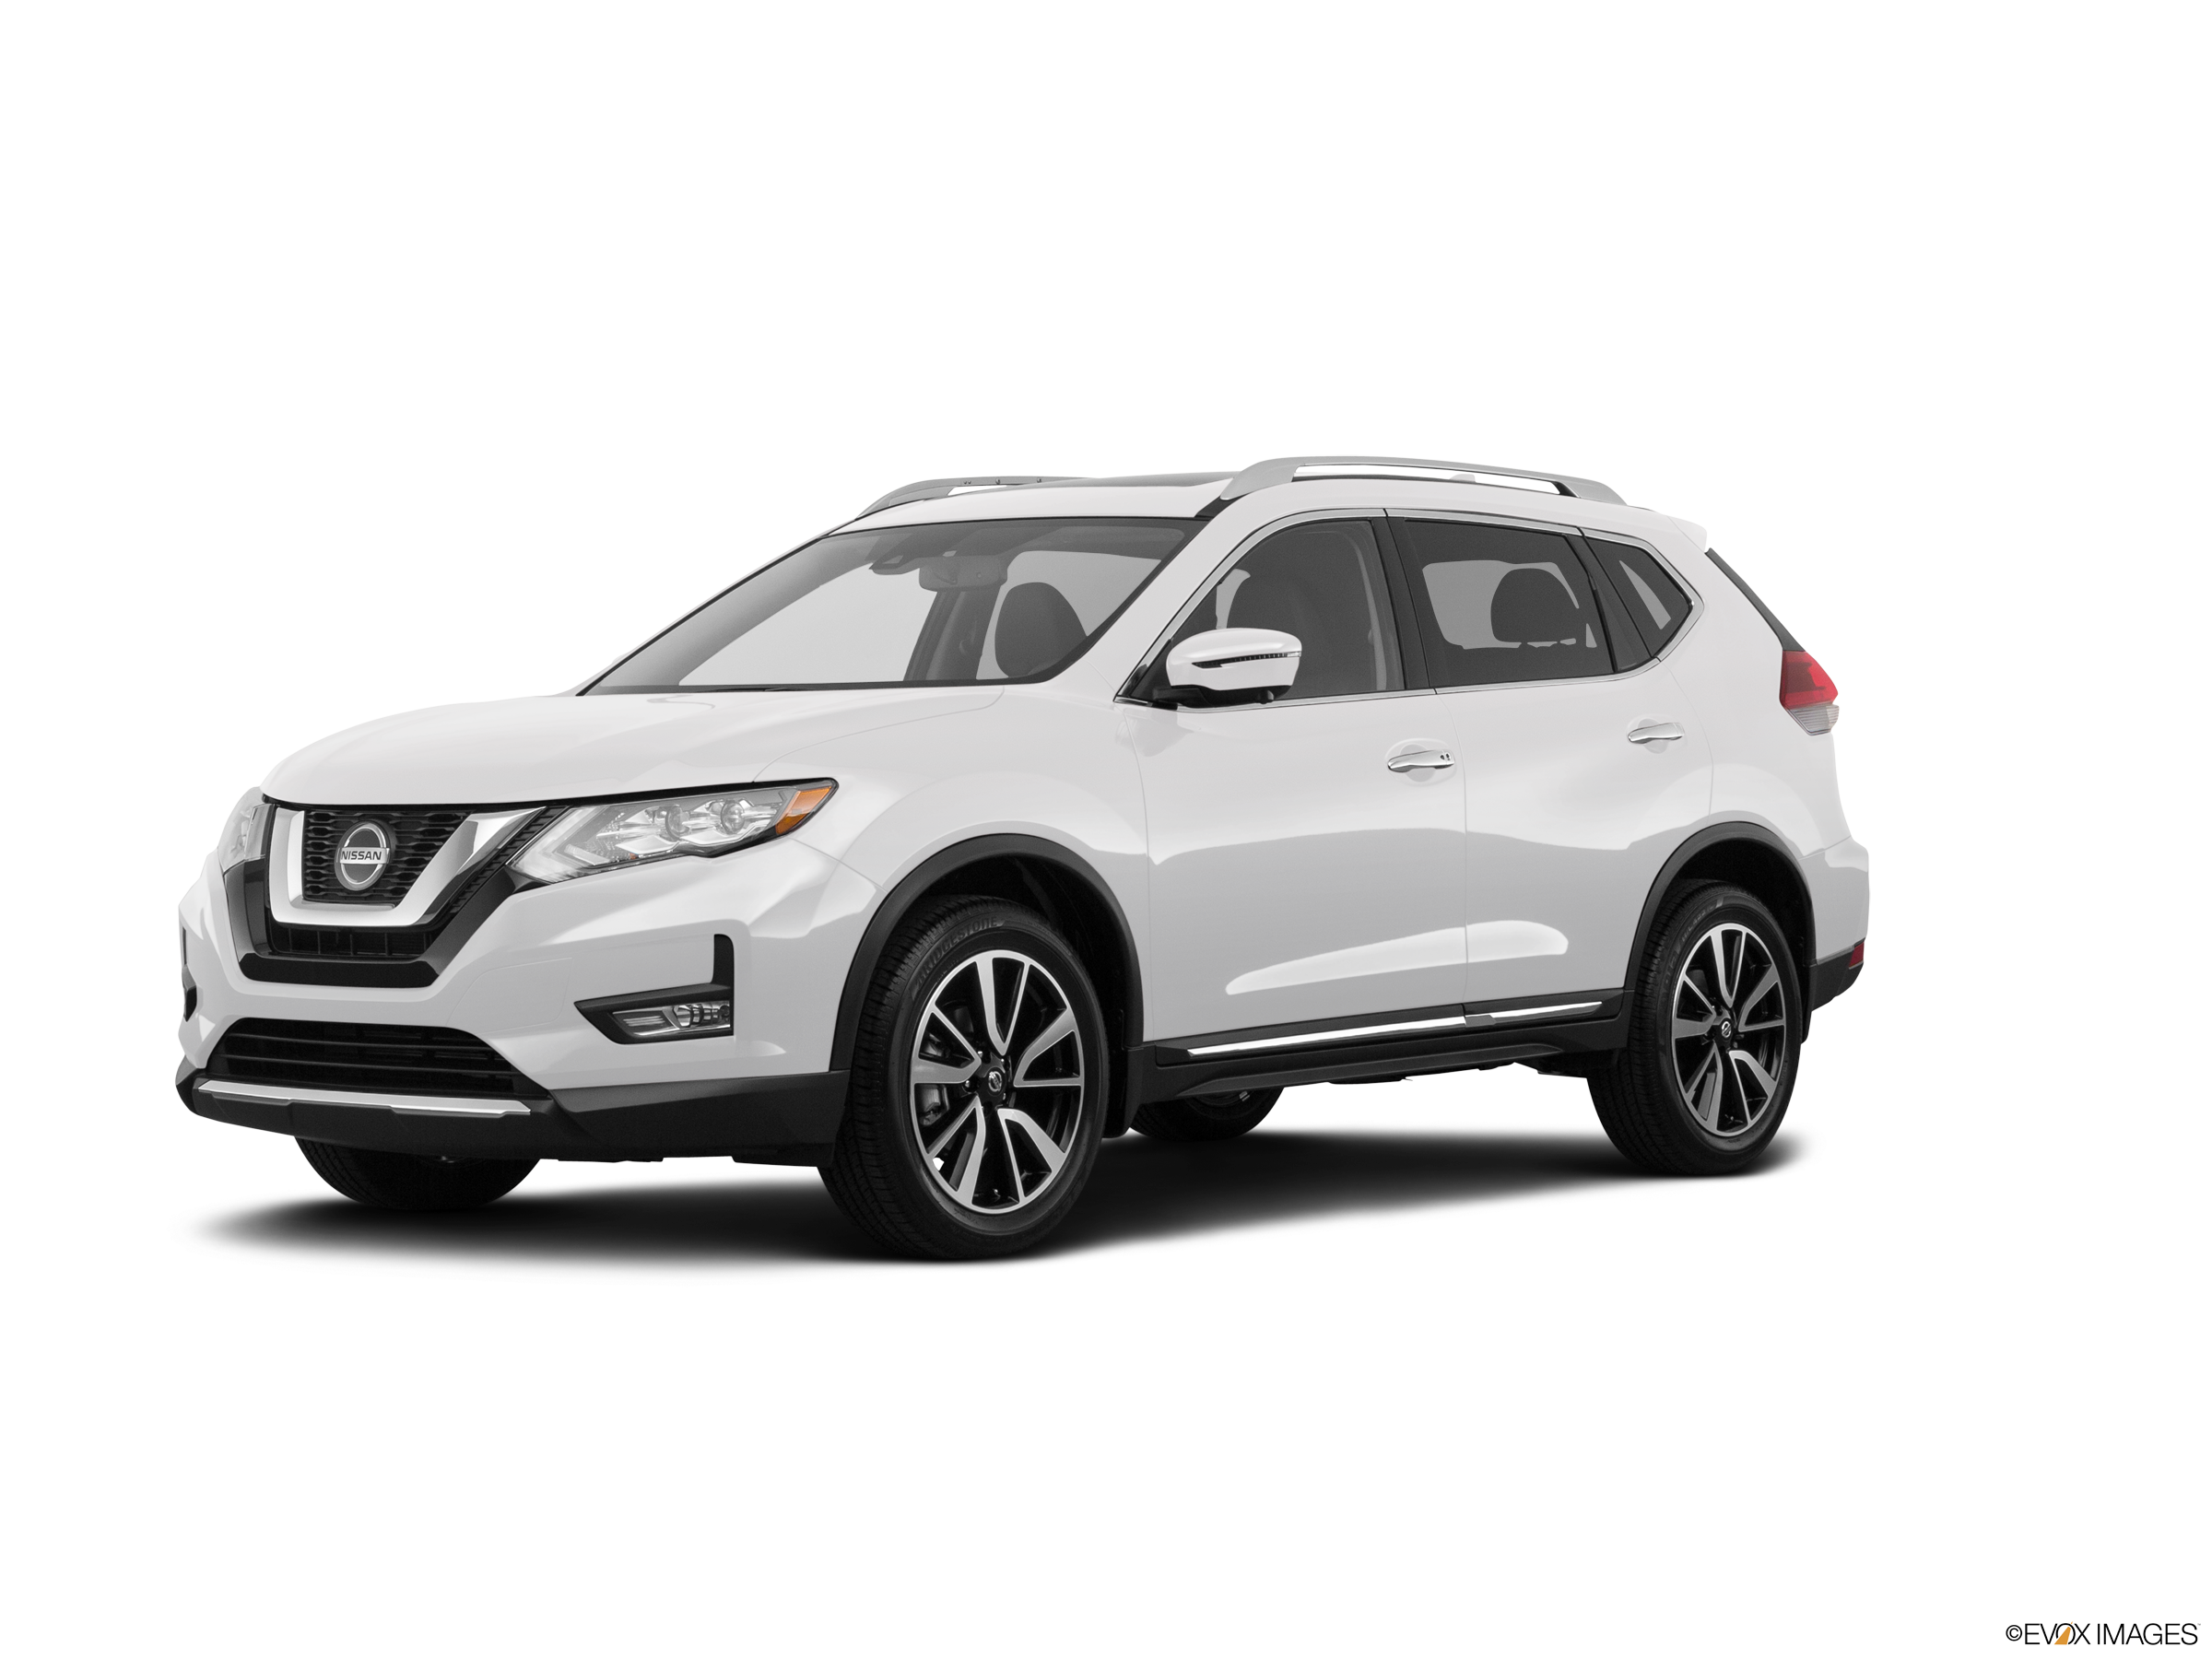 2020 Nissan Rogue Prices, Reviews & Pictures | Kelley Blue Book